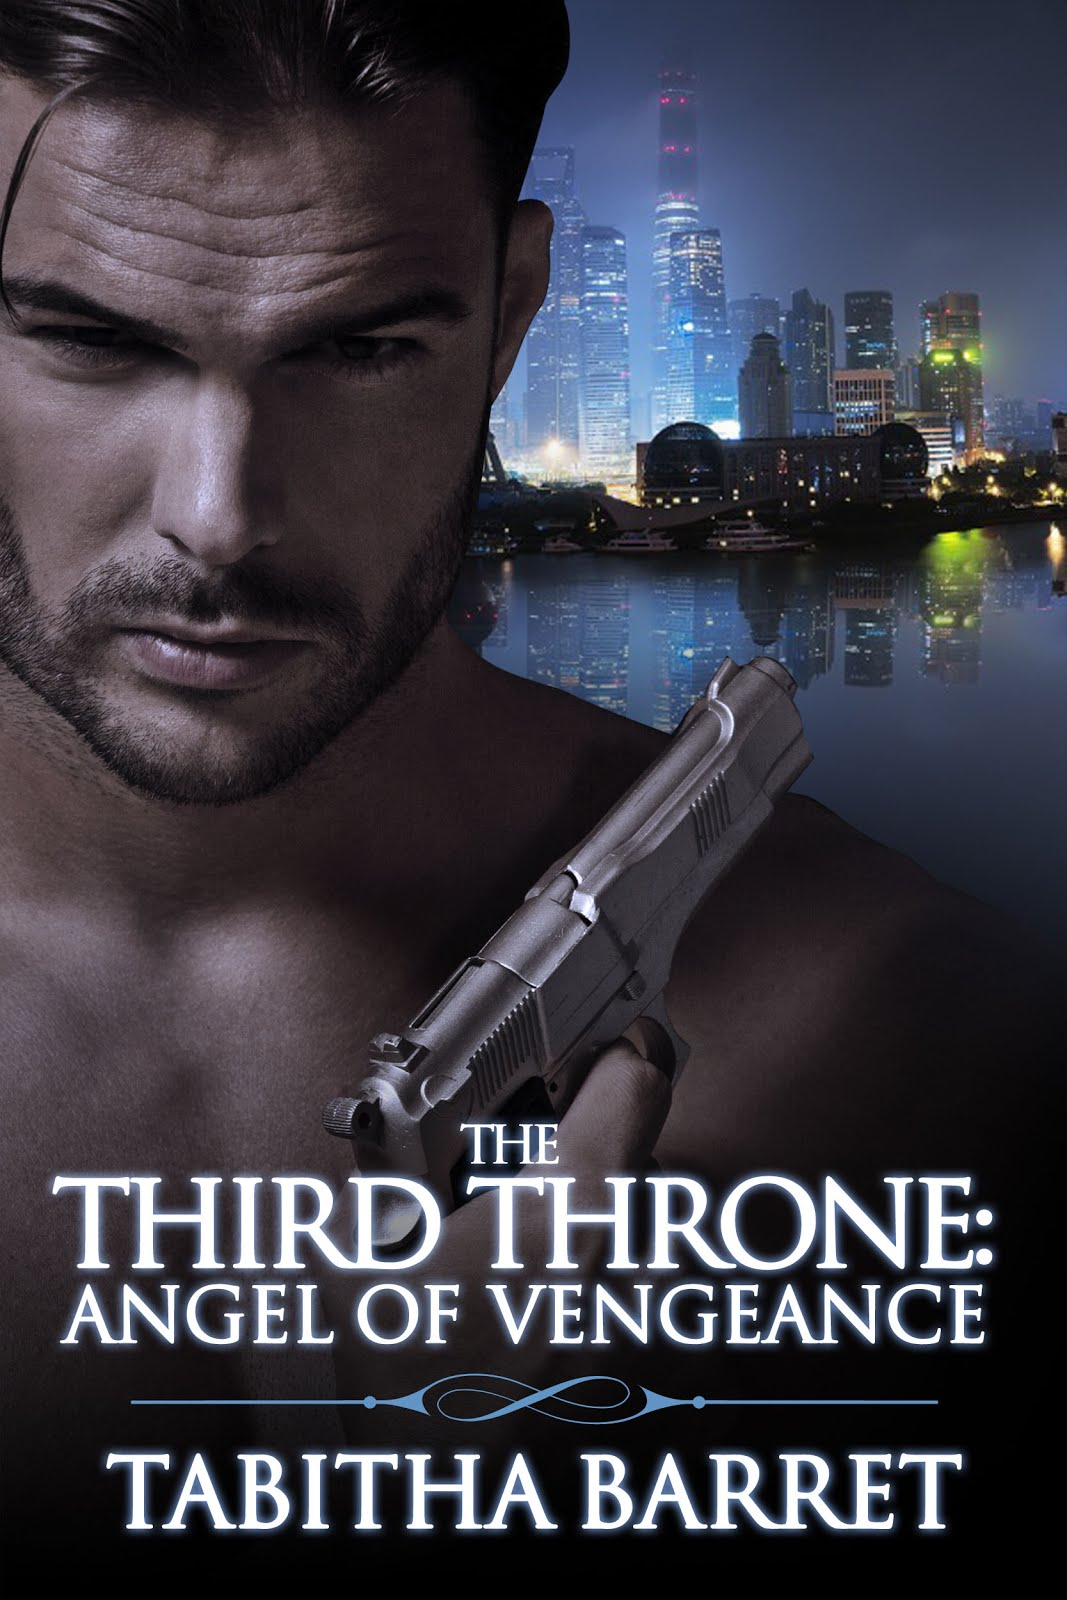 The Third Throne: Angel of Vengeance (Book #3), by Tabitha Barret